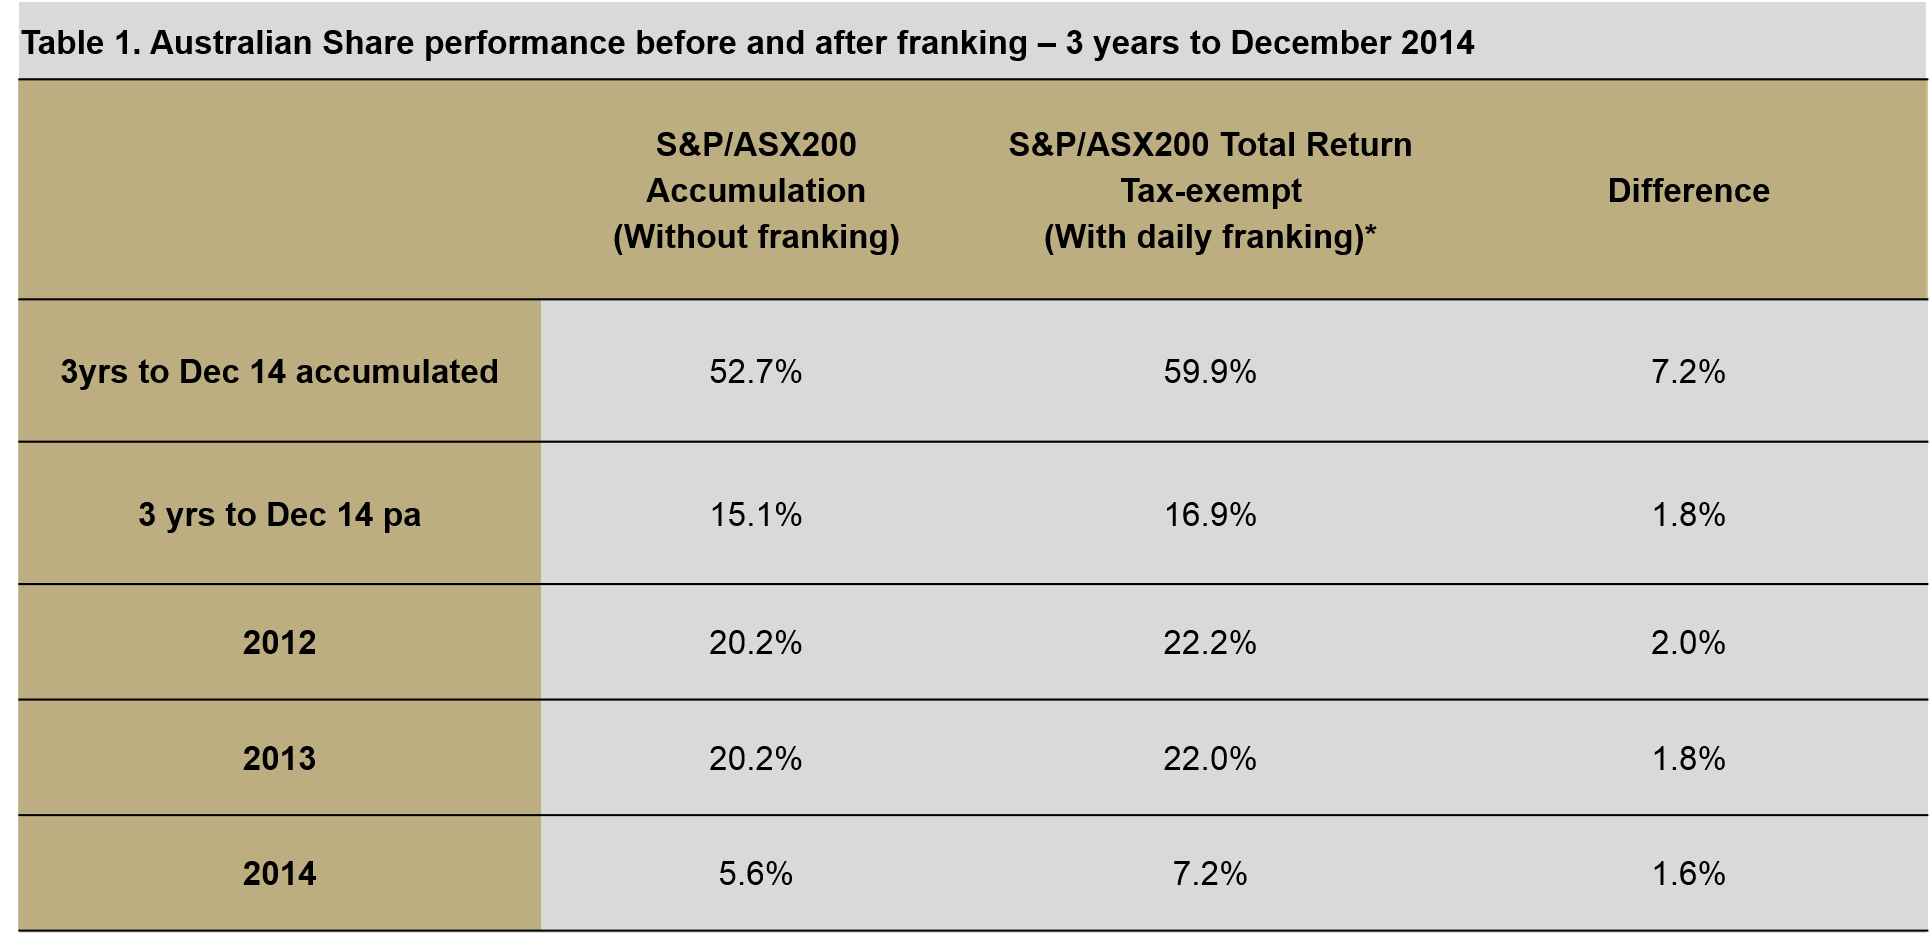 Table 1: Australian Share performance before and after franking – 3 years to December 2014